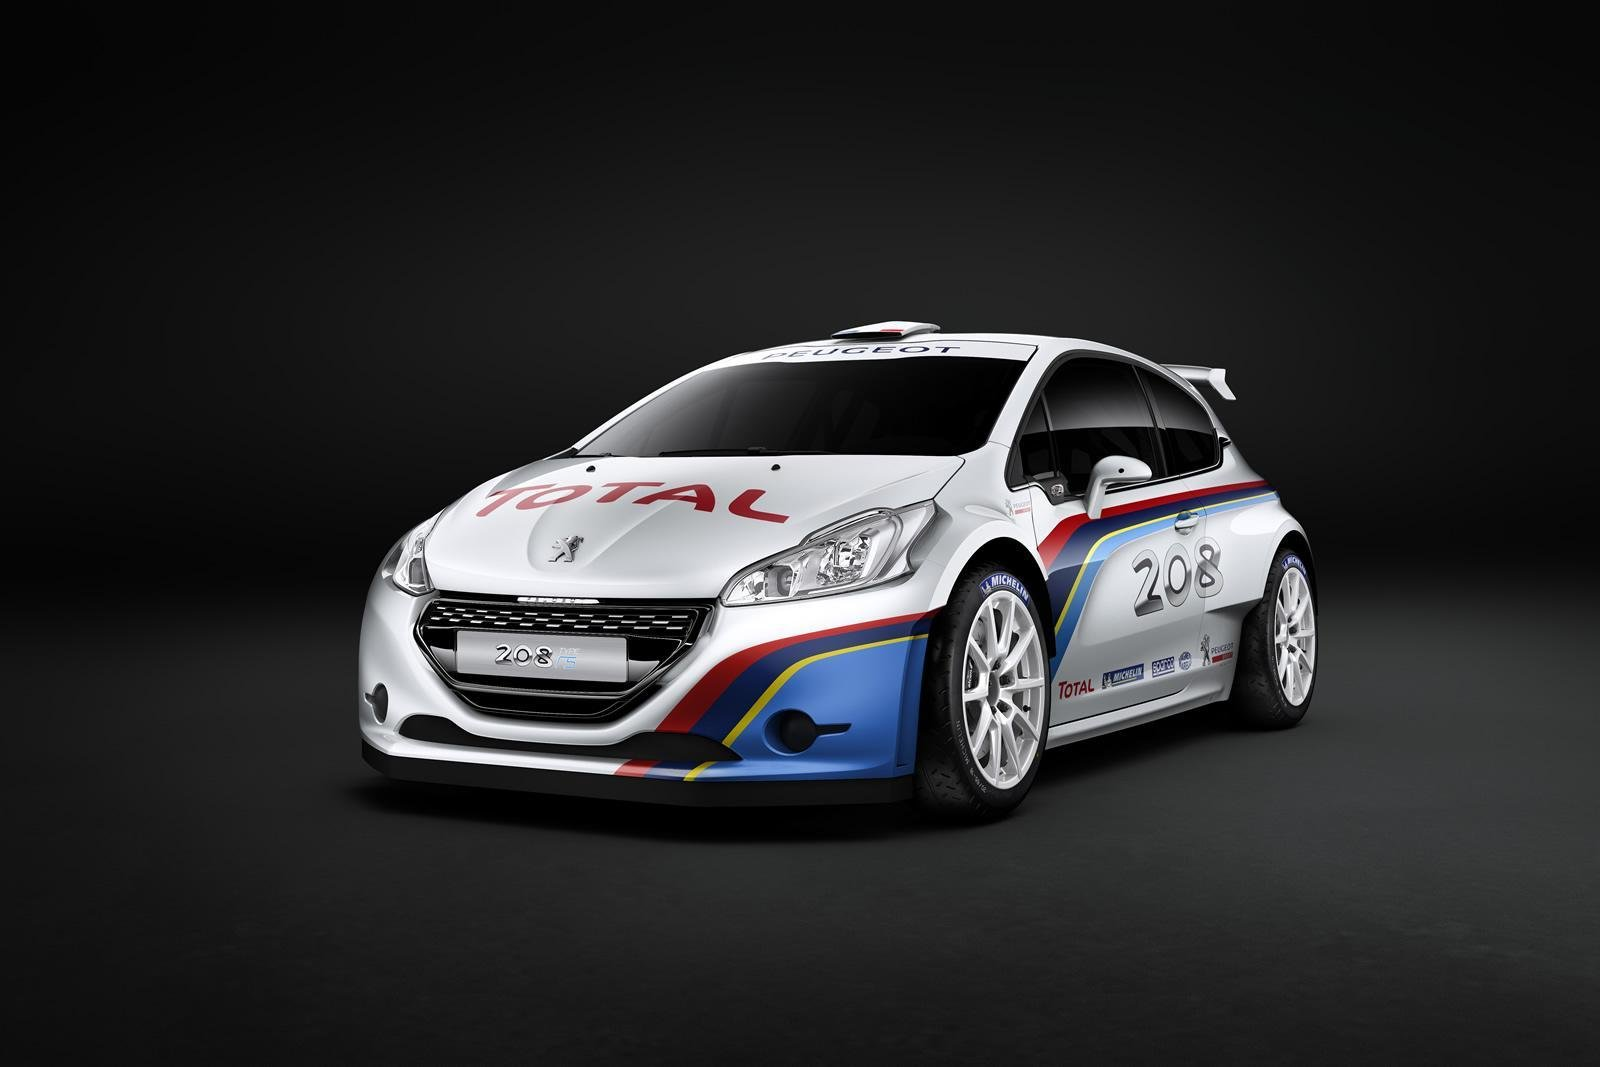 2013 peugeot 208 t16 type r5 rally car top speed. Black Bedroom Furniture Sets. Home Design Ideas